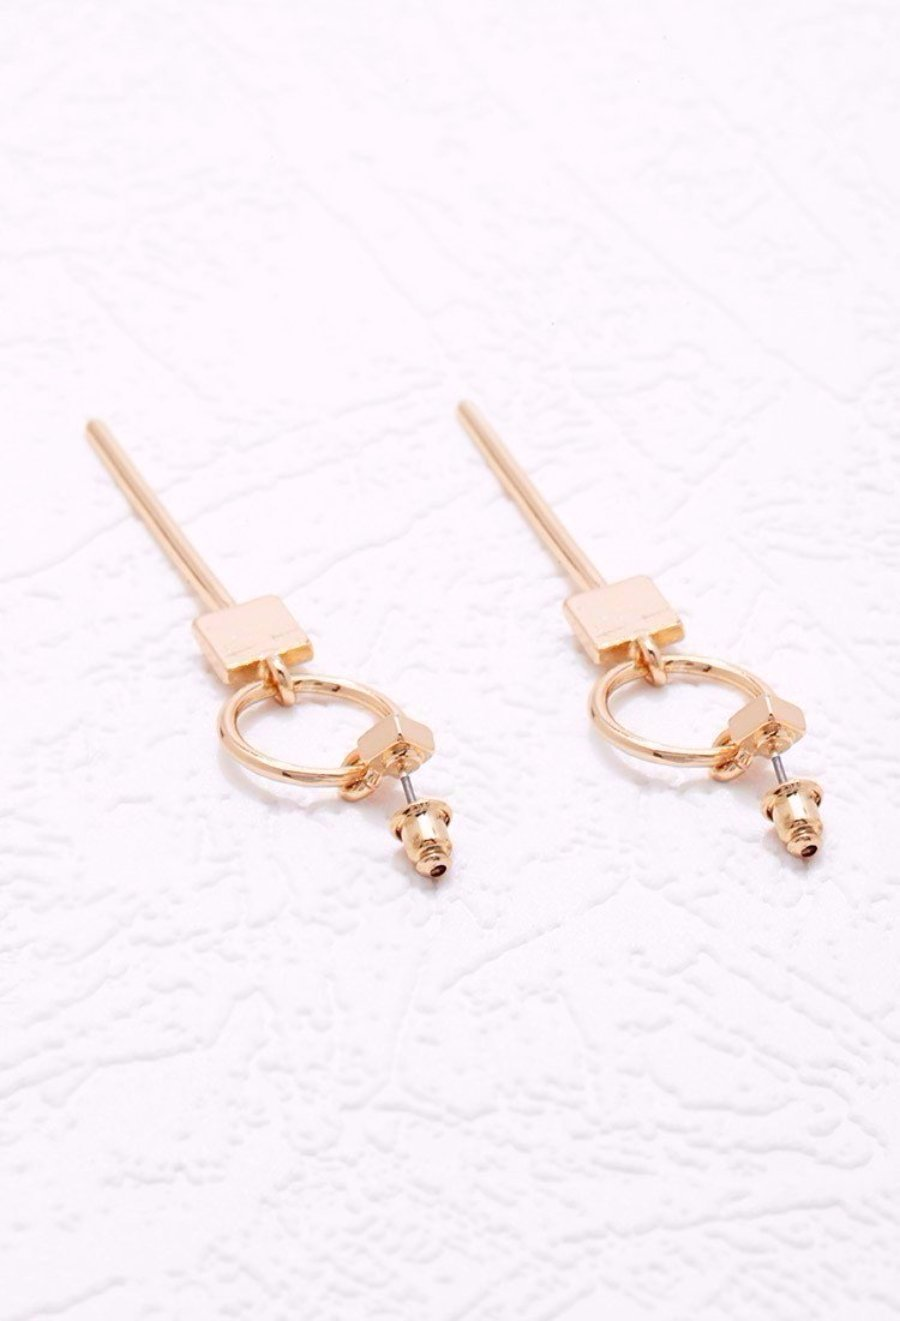 jewelry item round popular in most fashion earrings limited from women brincos time glass trendy zinc stud style alloy